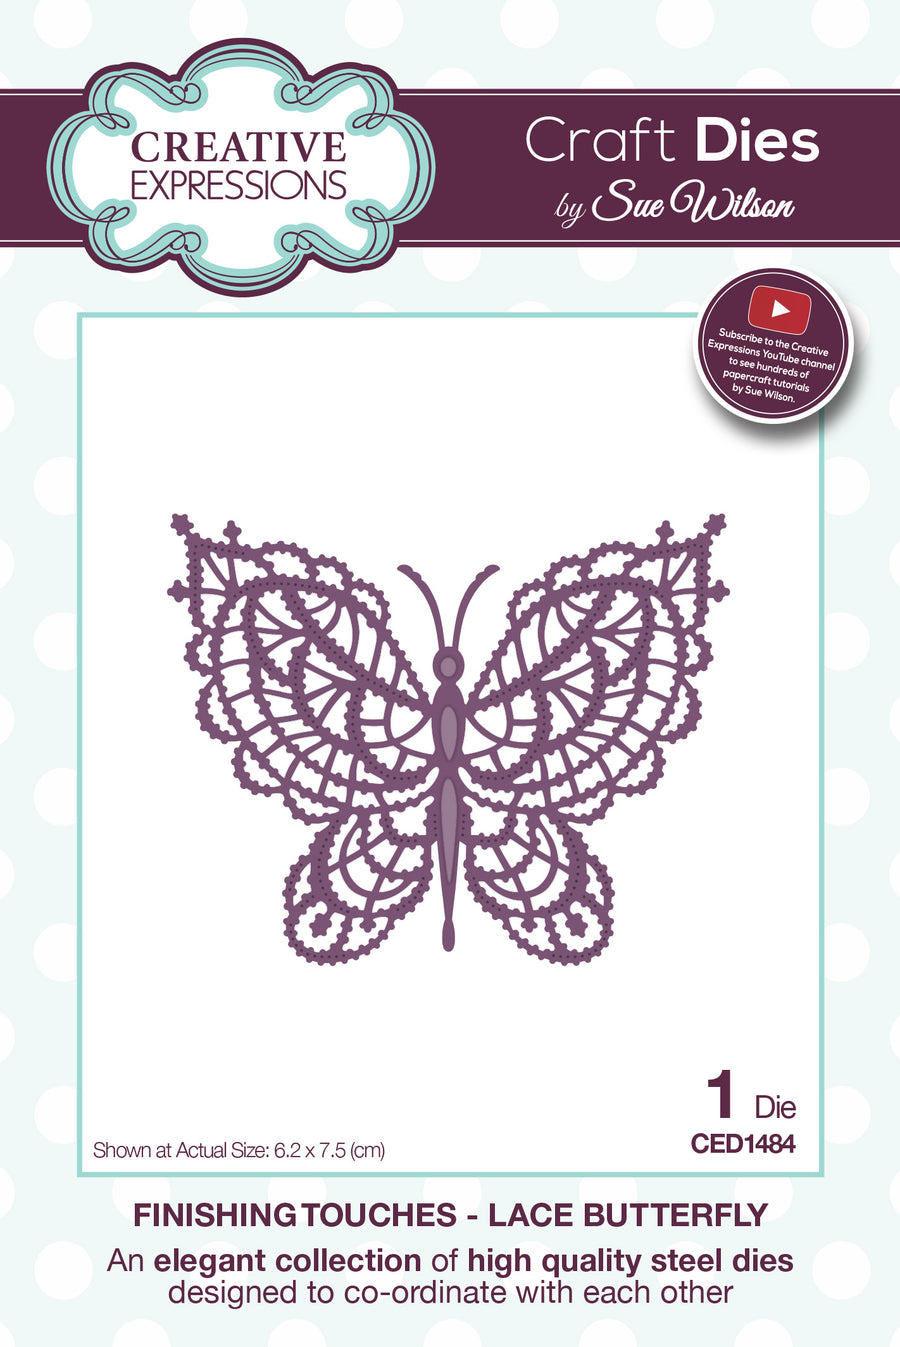 Sue Wilson Dies: Finishing Touches - Lace Butterfly (CED1484)